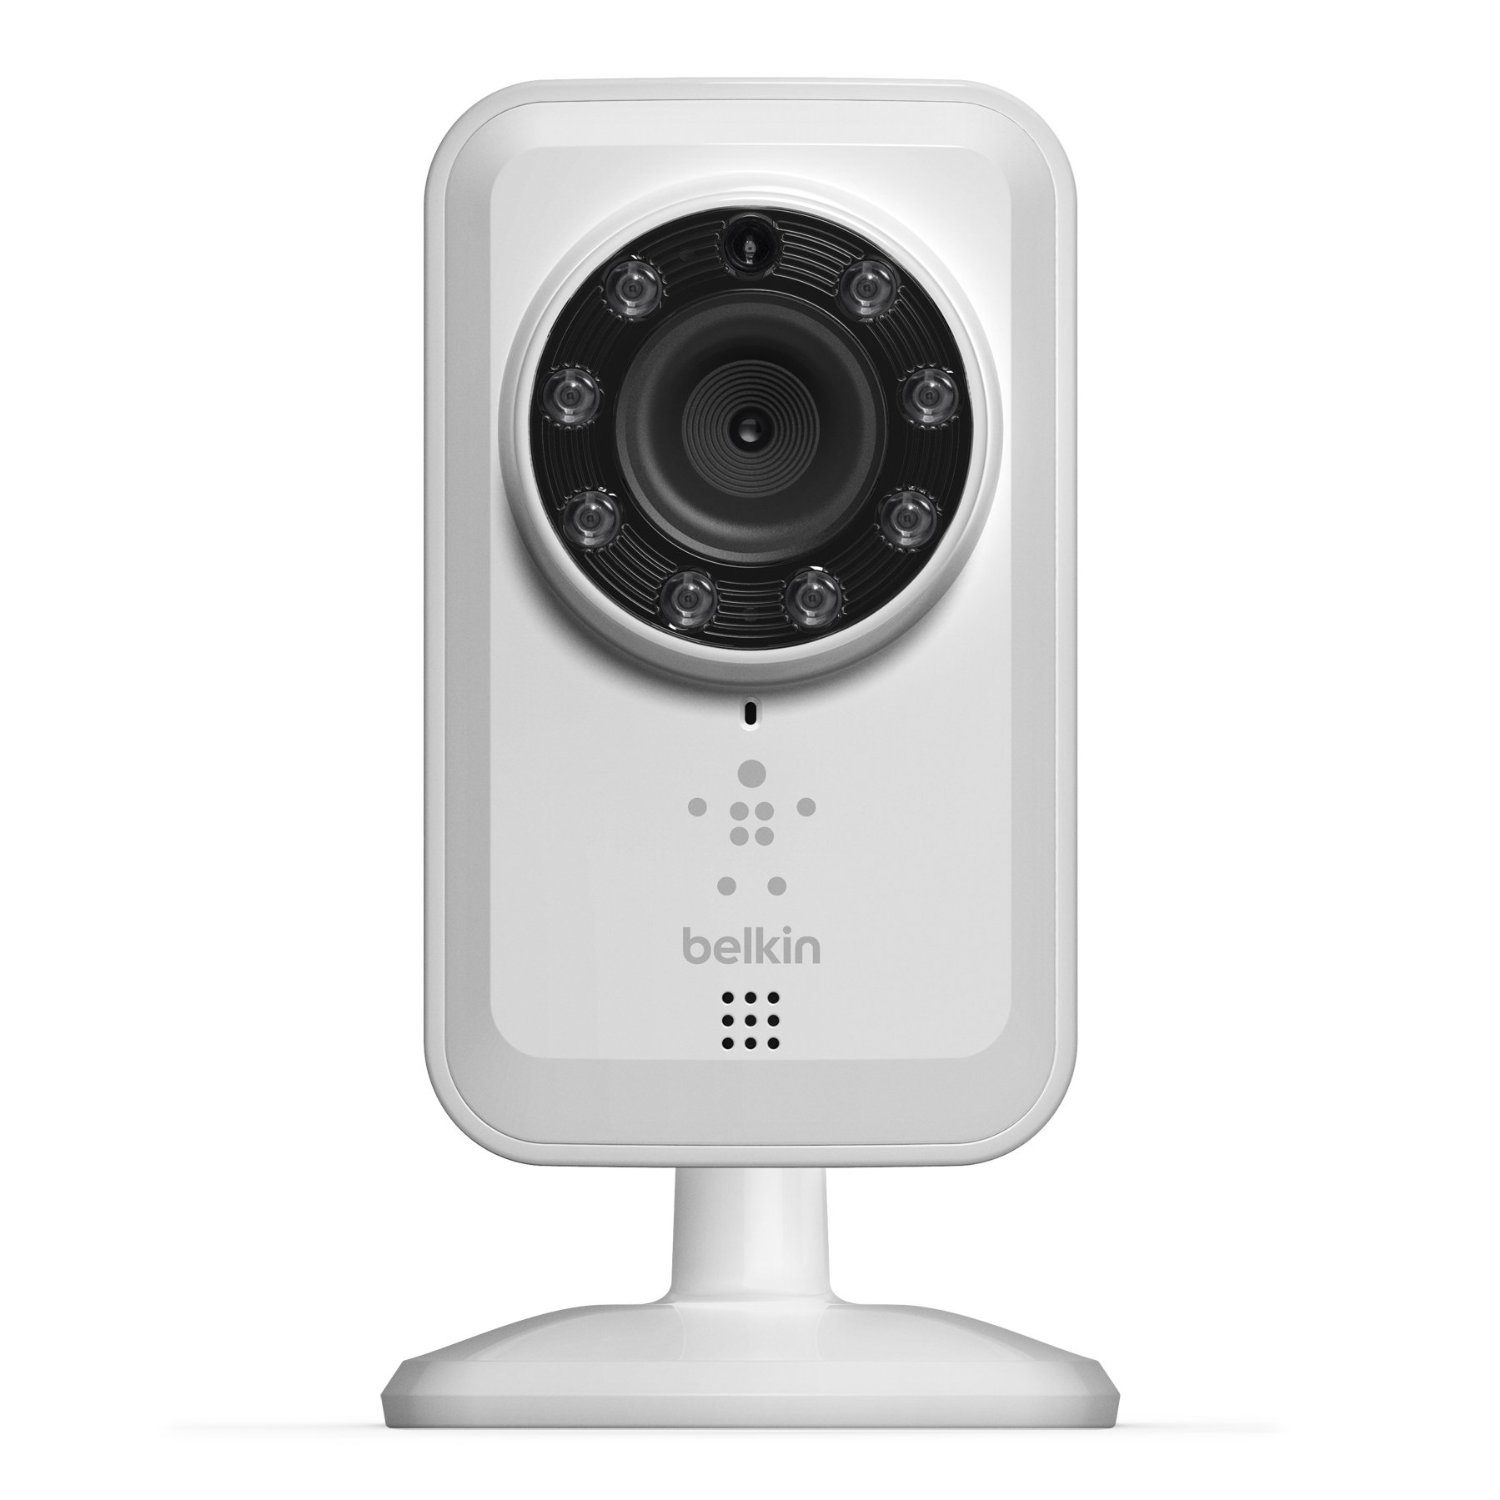 Belkin Night Vision Video Security